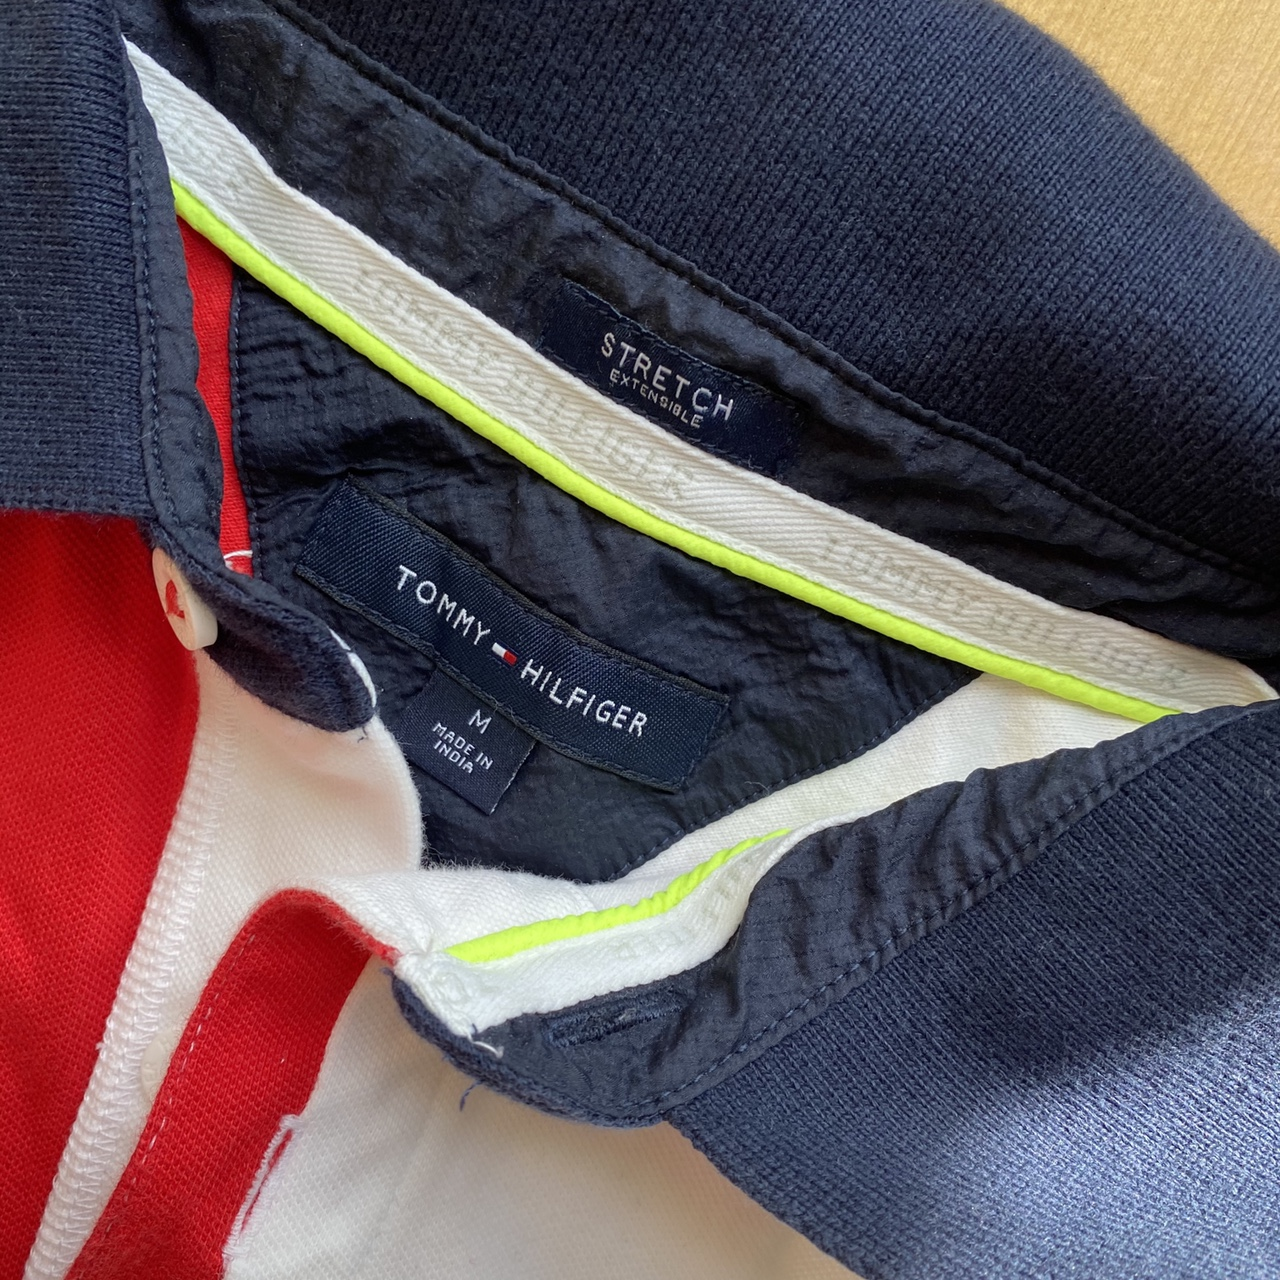 Product Image 3 - Tommy Hilfiger polo Tommy Hilfiger